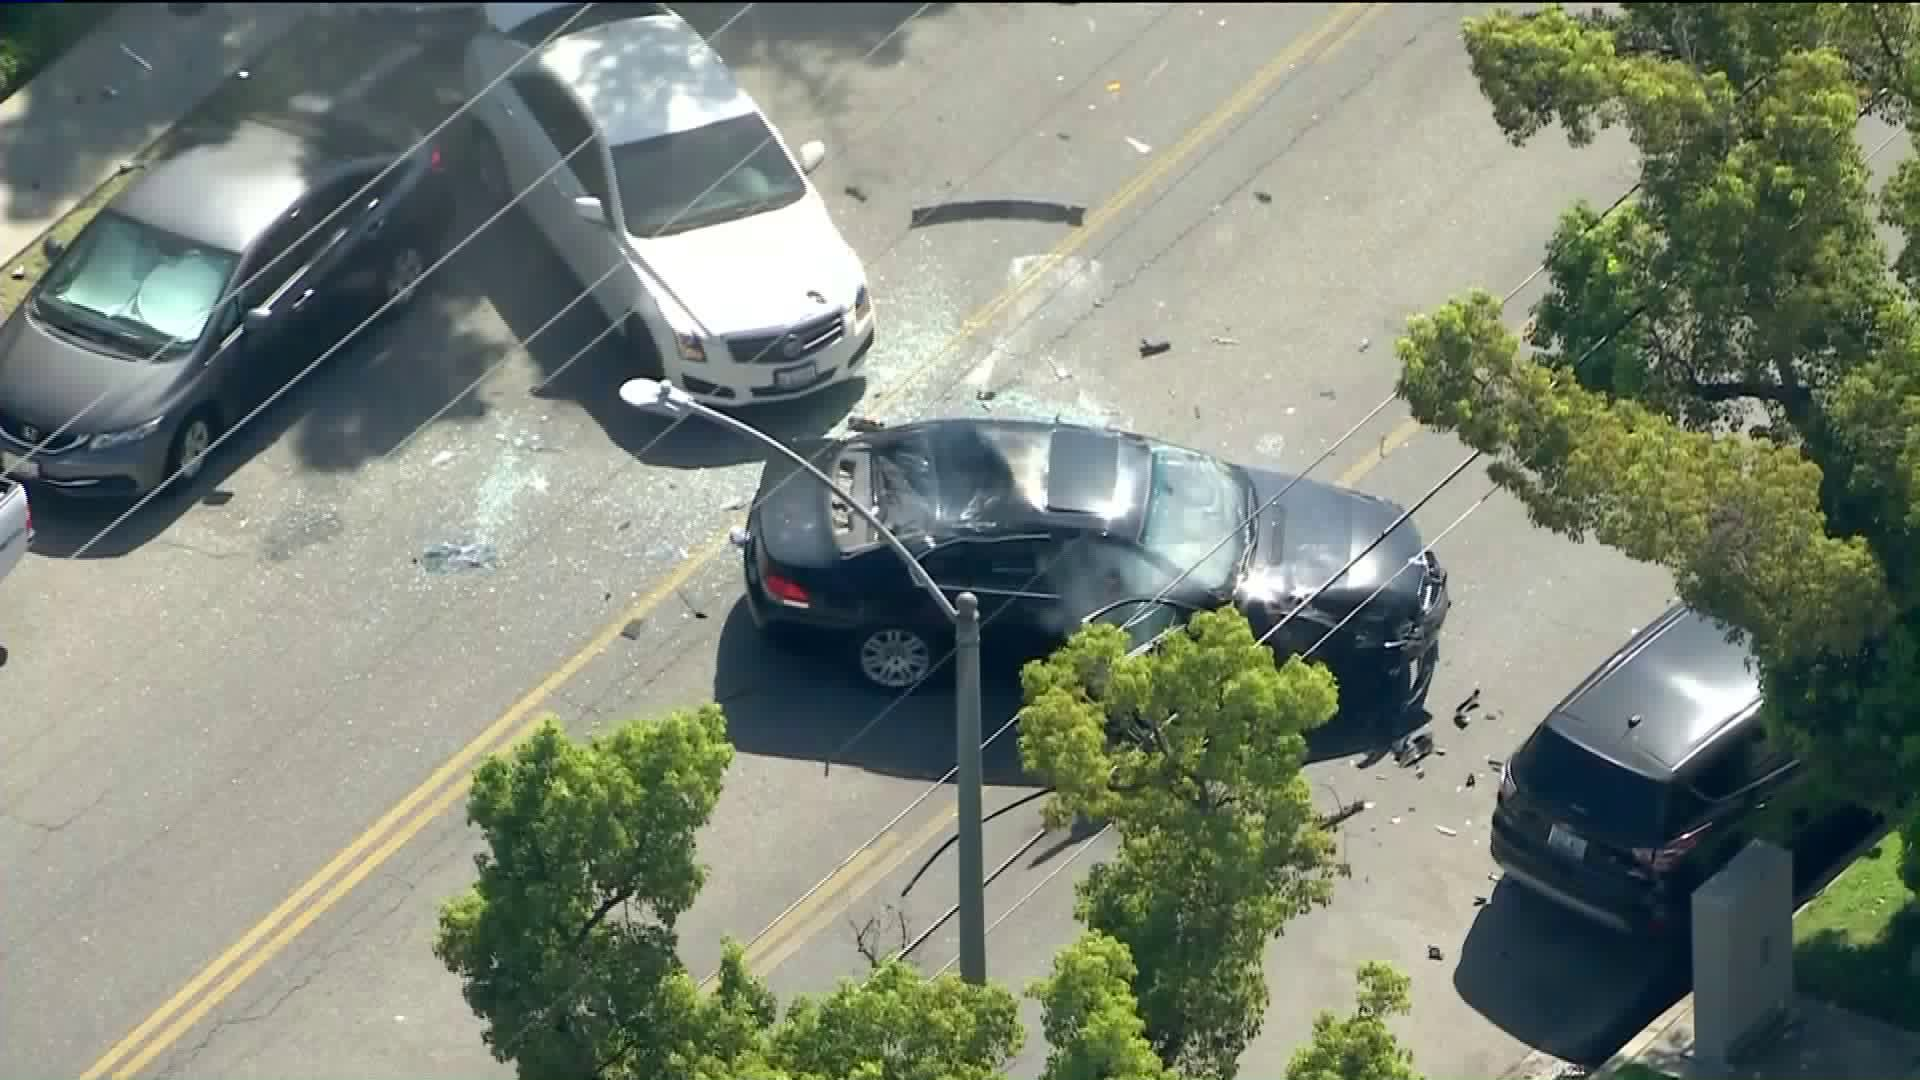 Authorities were pursuing a vehicle in Burbank on Aug. 5, 2020. (KTLA)